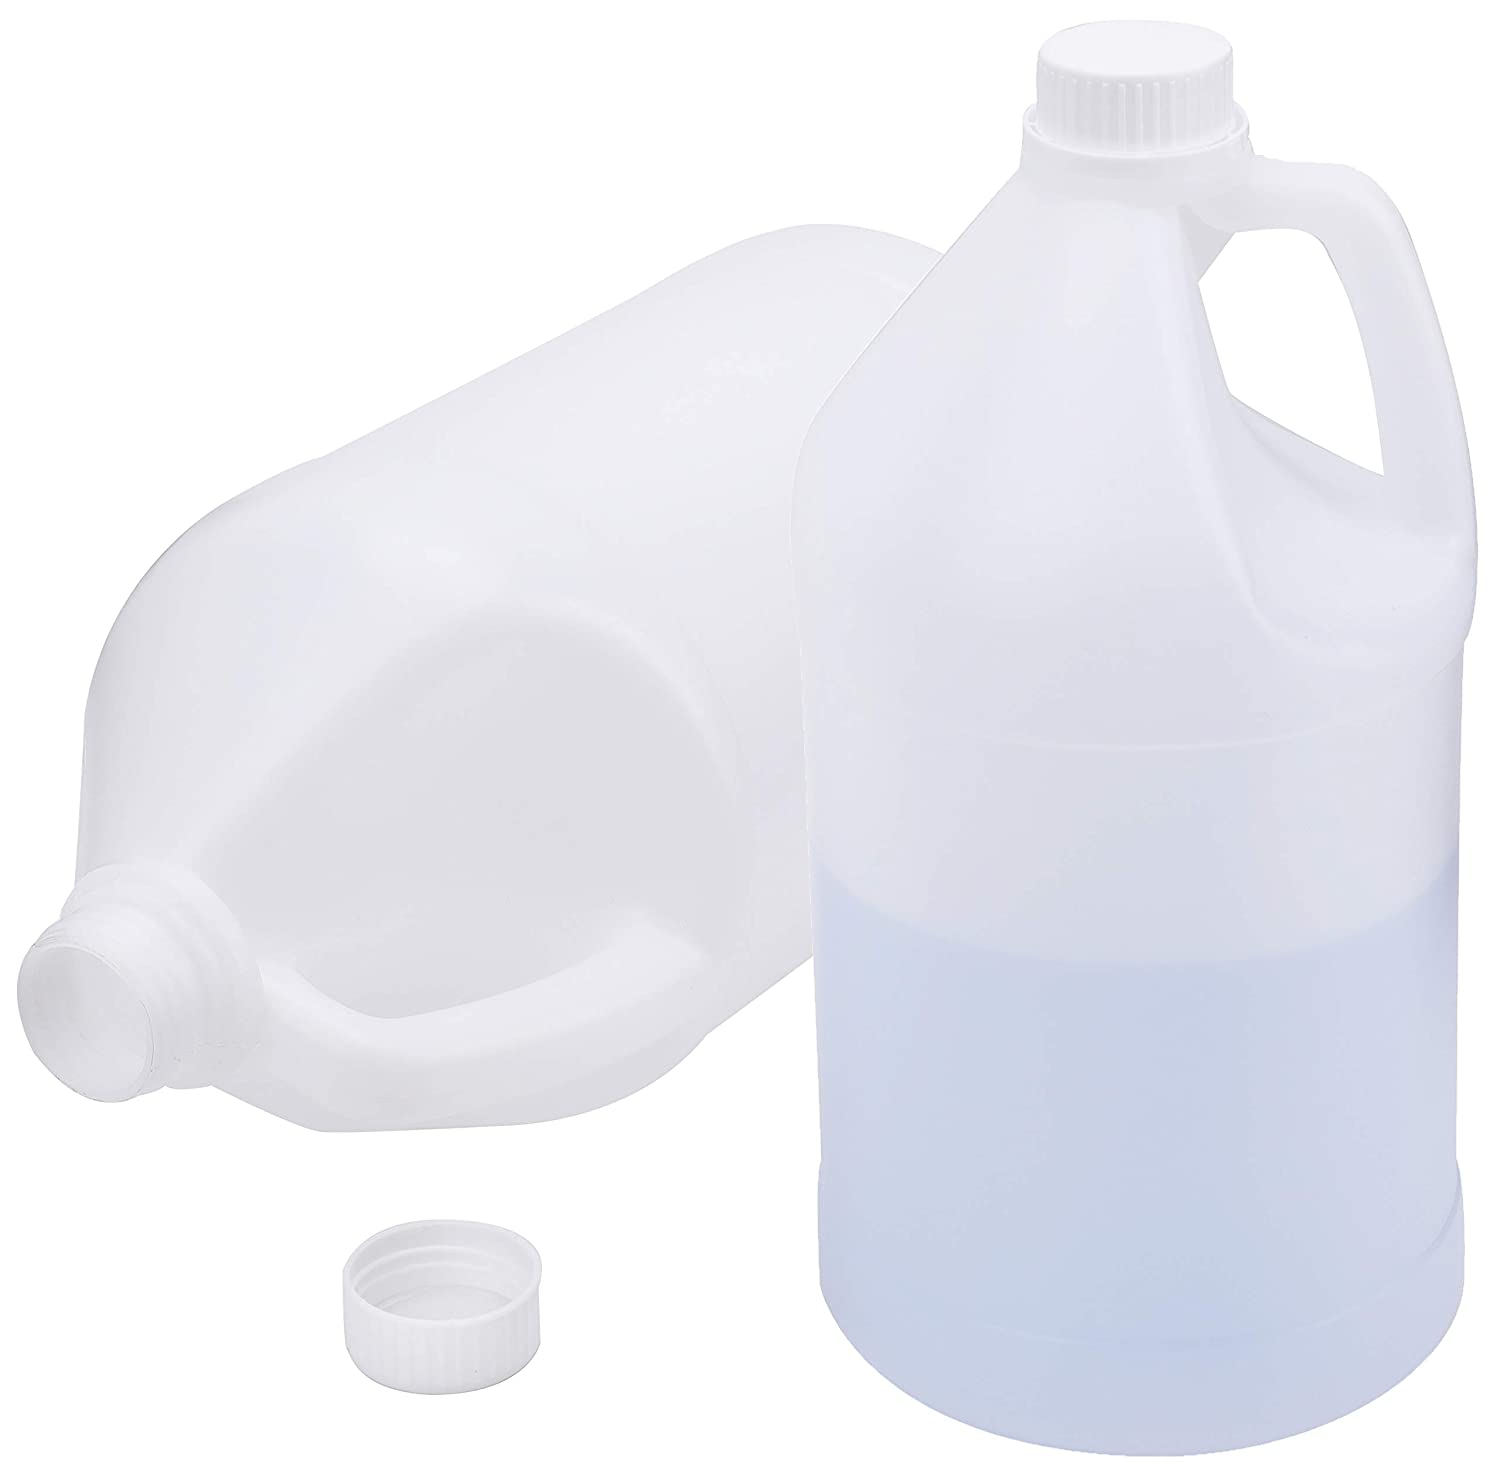 WUWEOT 2 Pack 1 Gallon HDPE Plastic Jugs, Jug with Child Resistant Airtight Lids for Home and Commercial Use, Bottle Storage Containers for Water, Soaps, Detergents, Liquids, Food Safe BPA Free